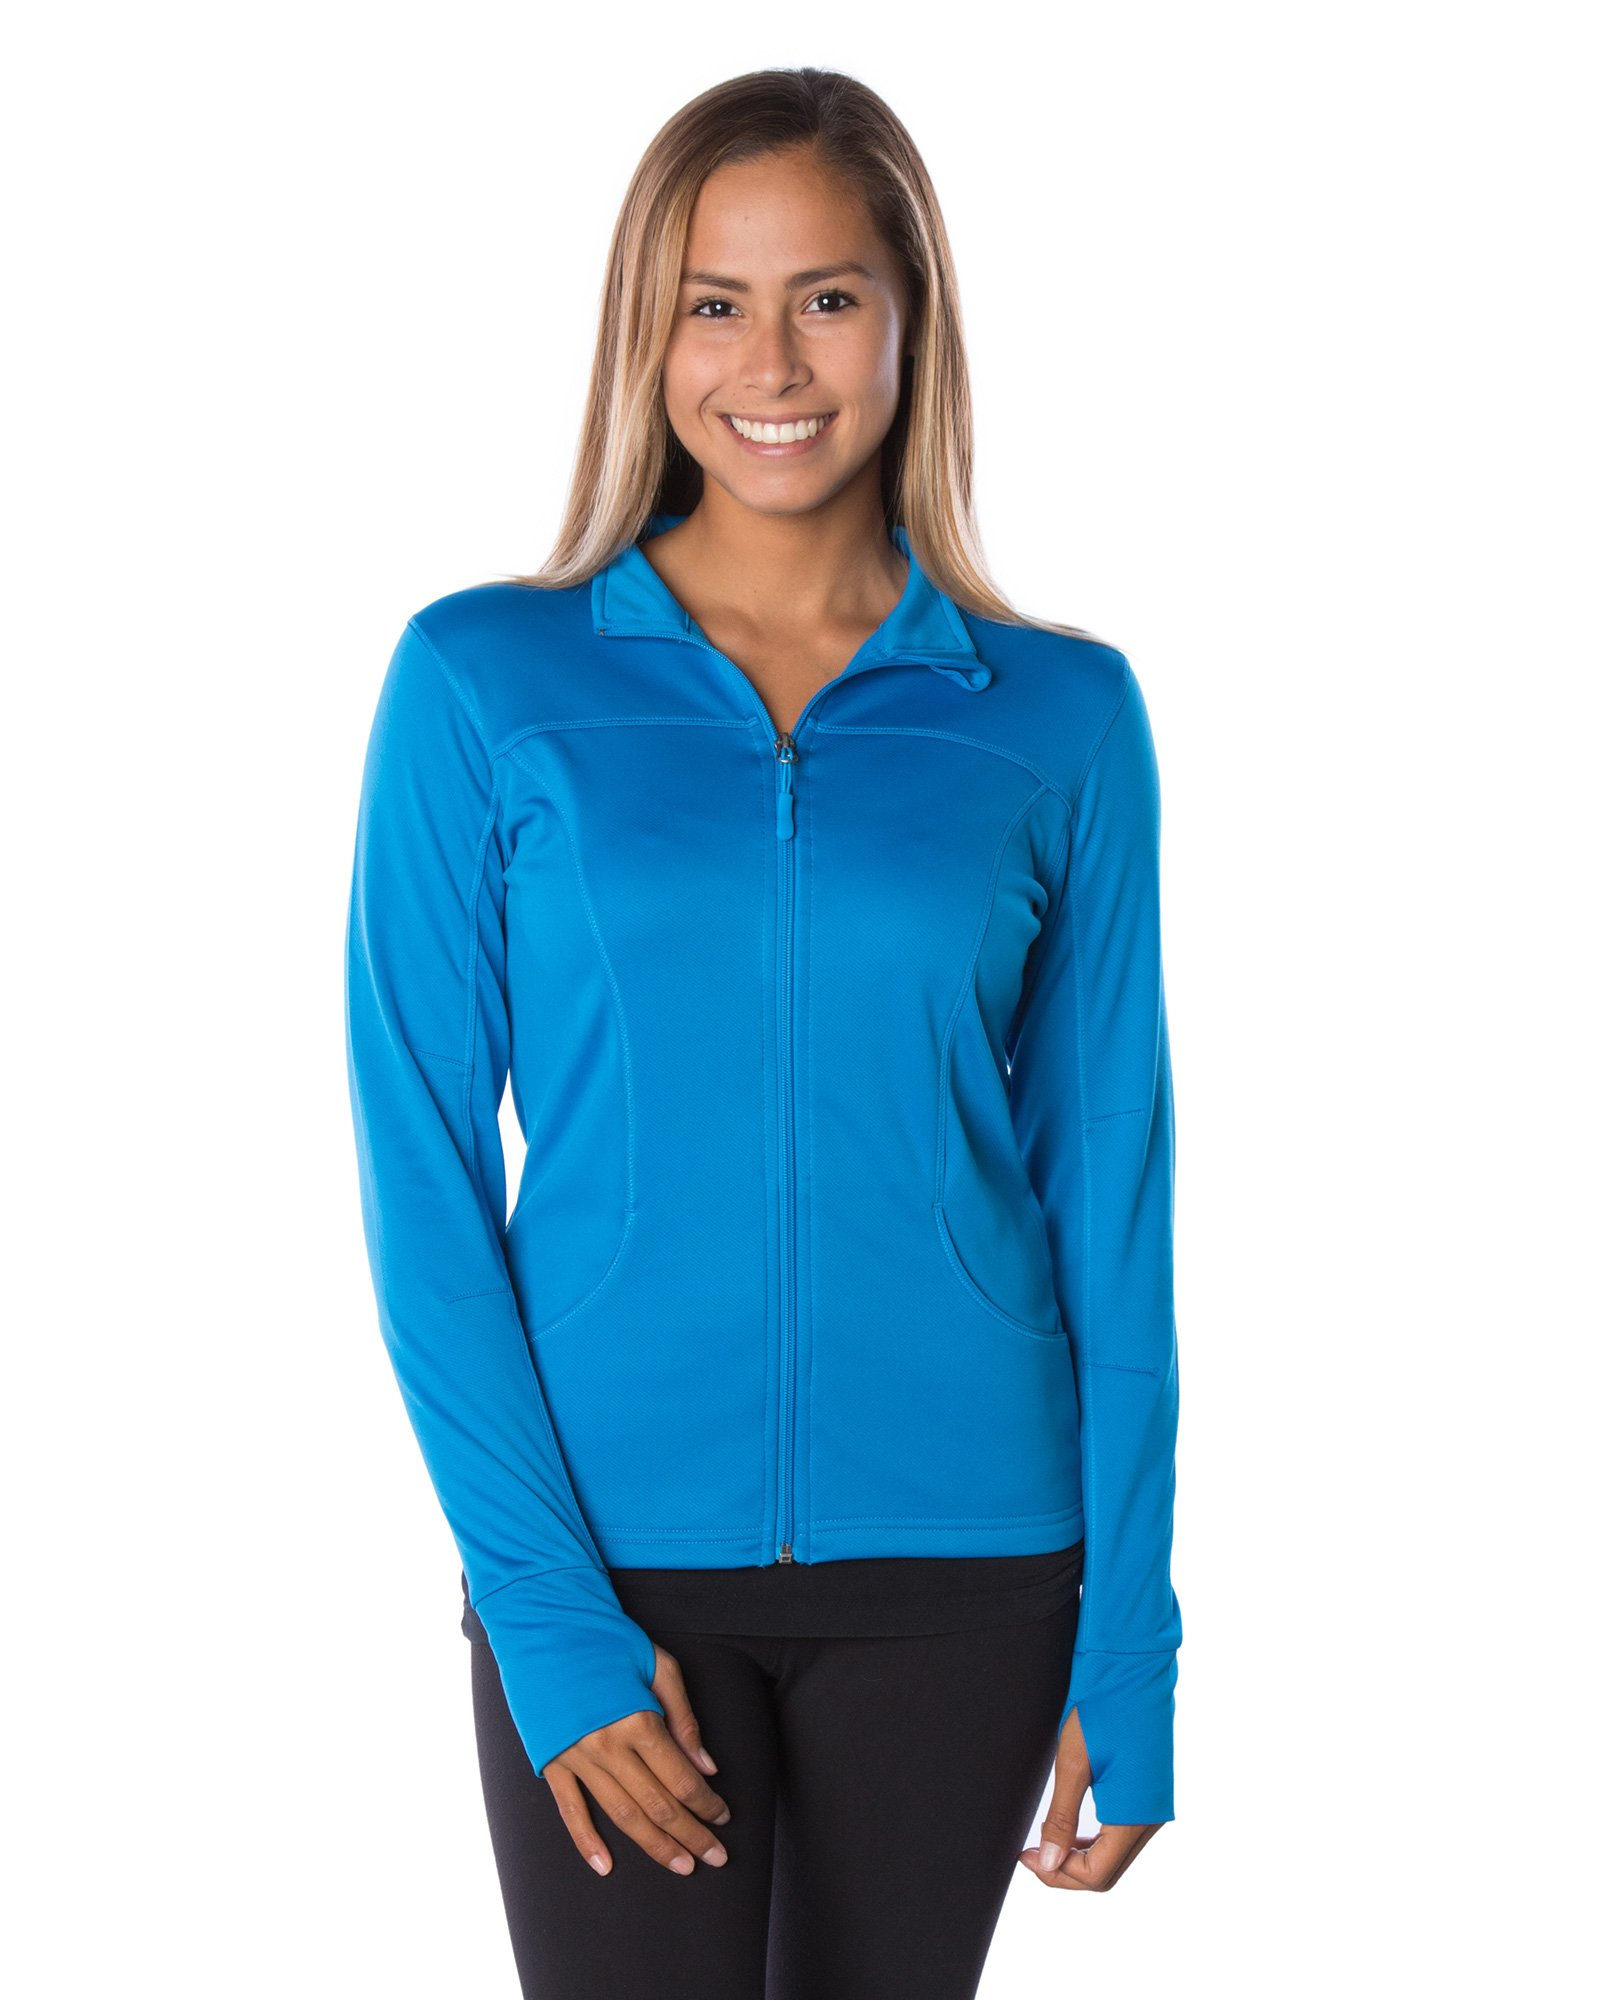 Global Women's Slim Fit Lightweight Full Zip Yoga Workout Jacket XS Aster Blue